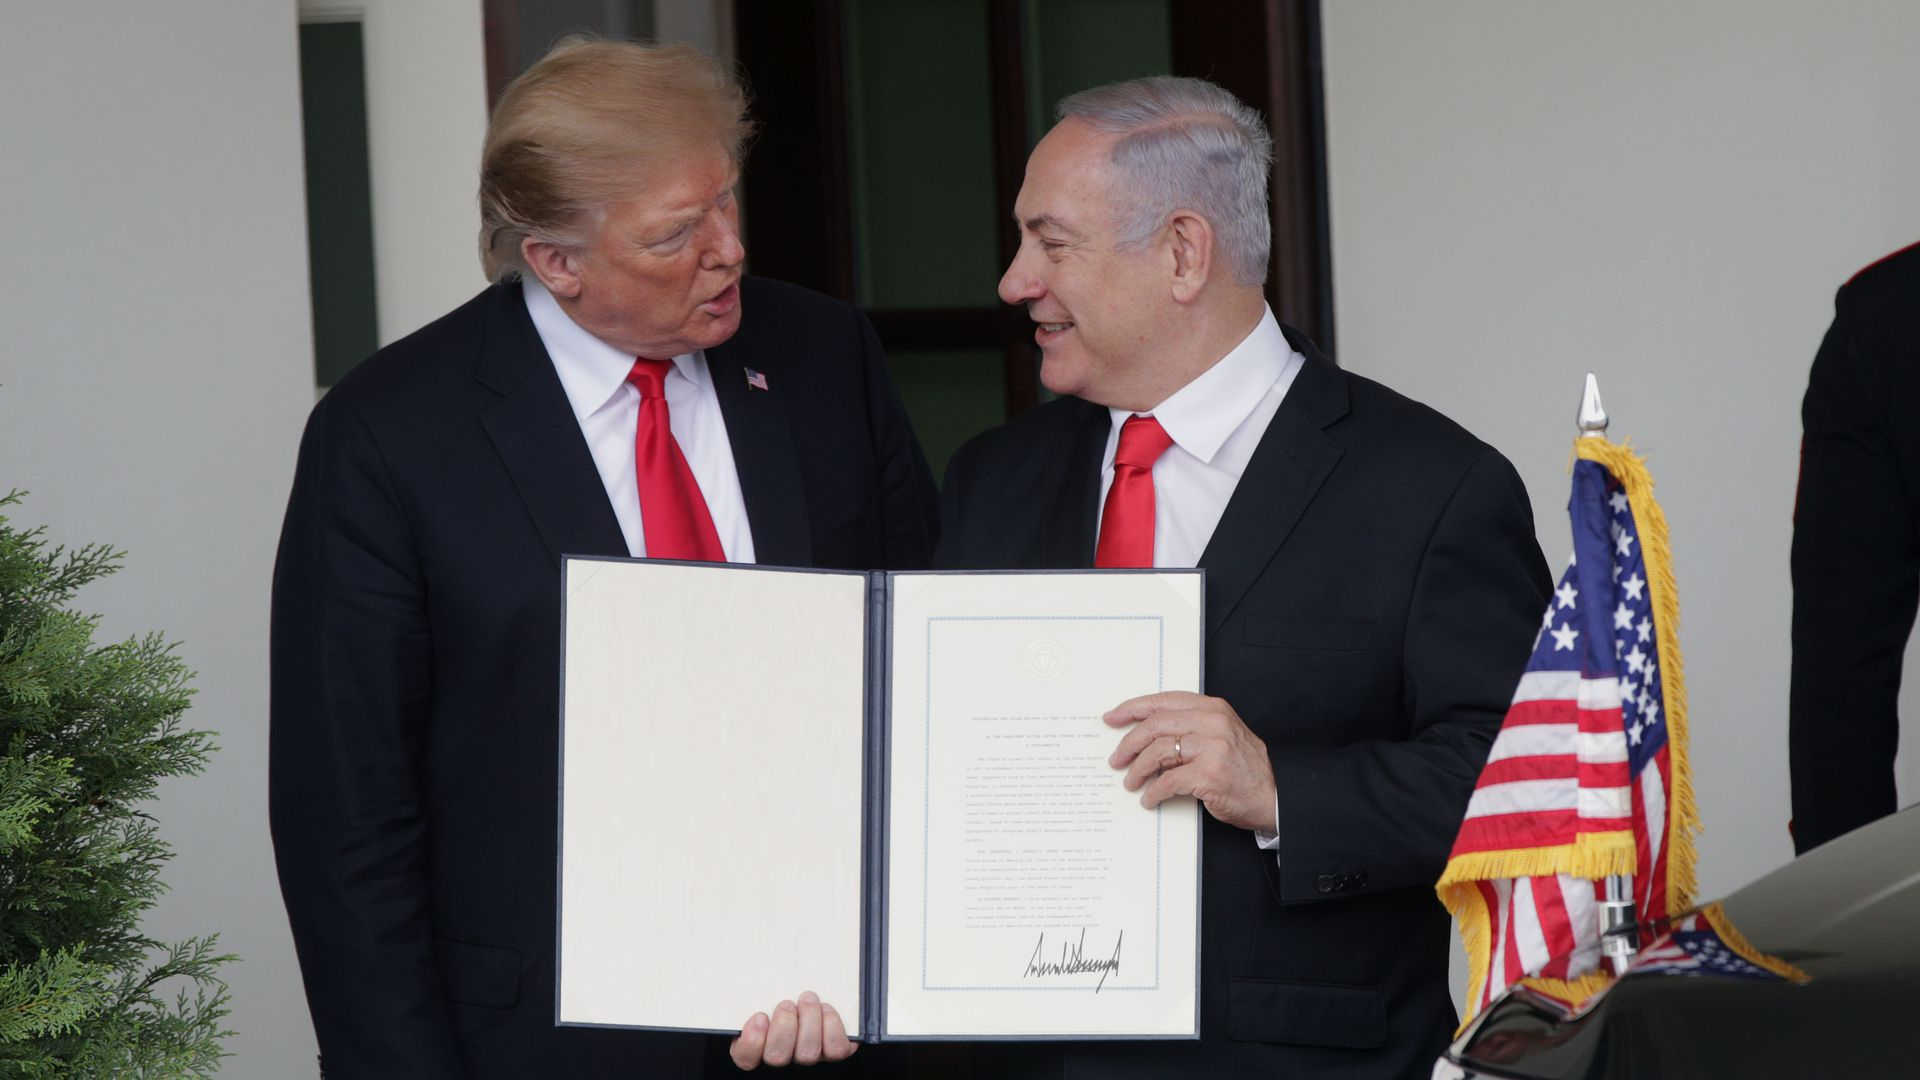 """You are great!"": Trump sends Netanyahu birthday letter after coalition failure"